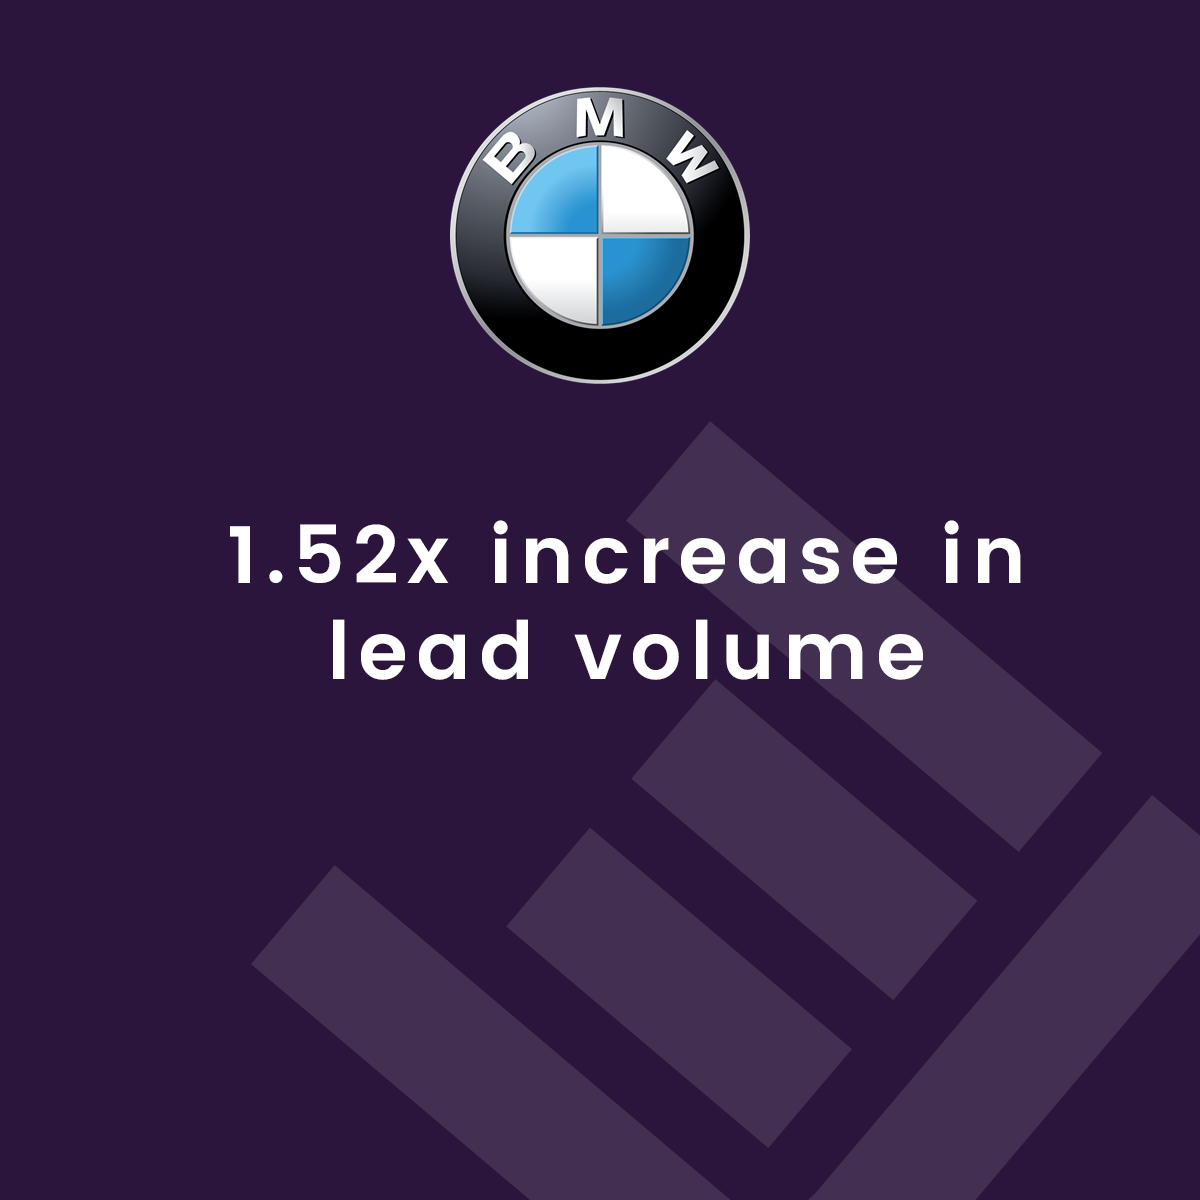 BMW Lead Increase.png